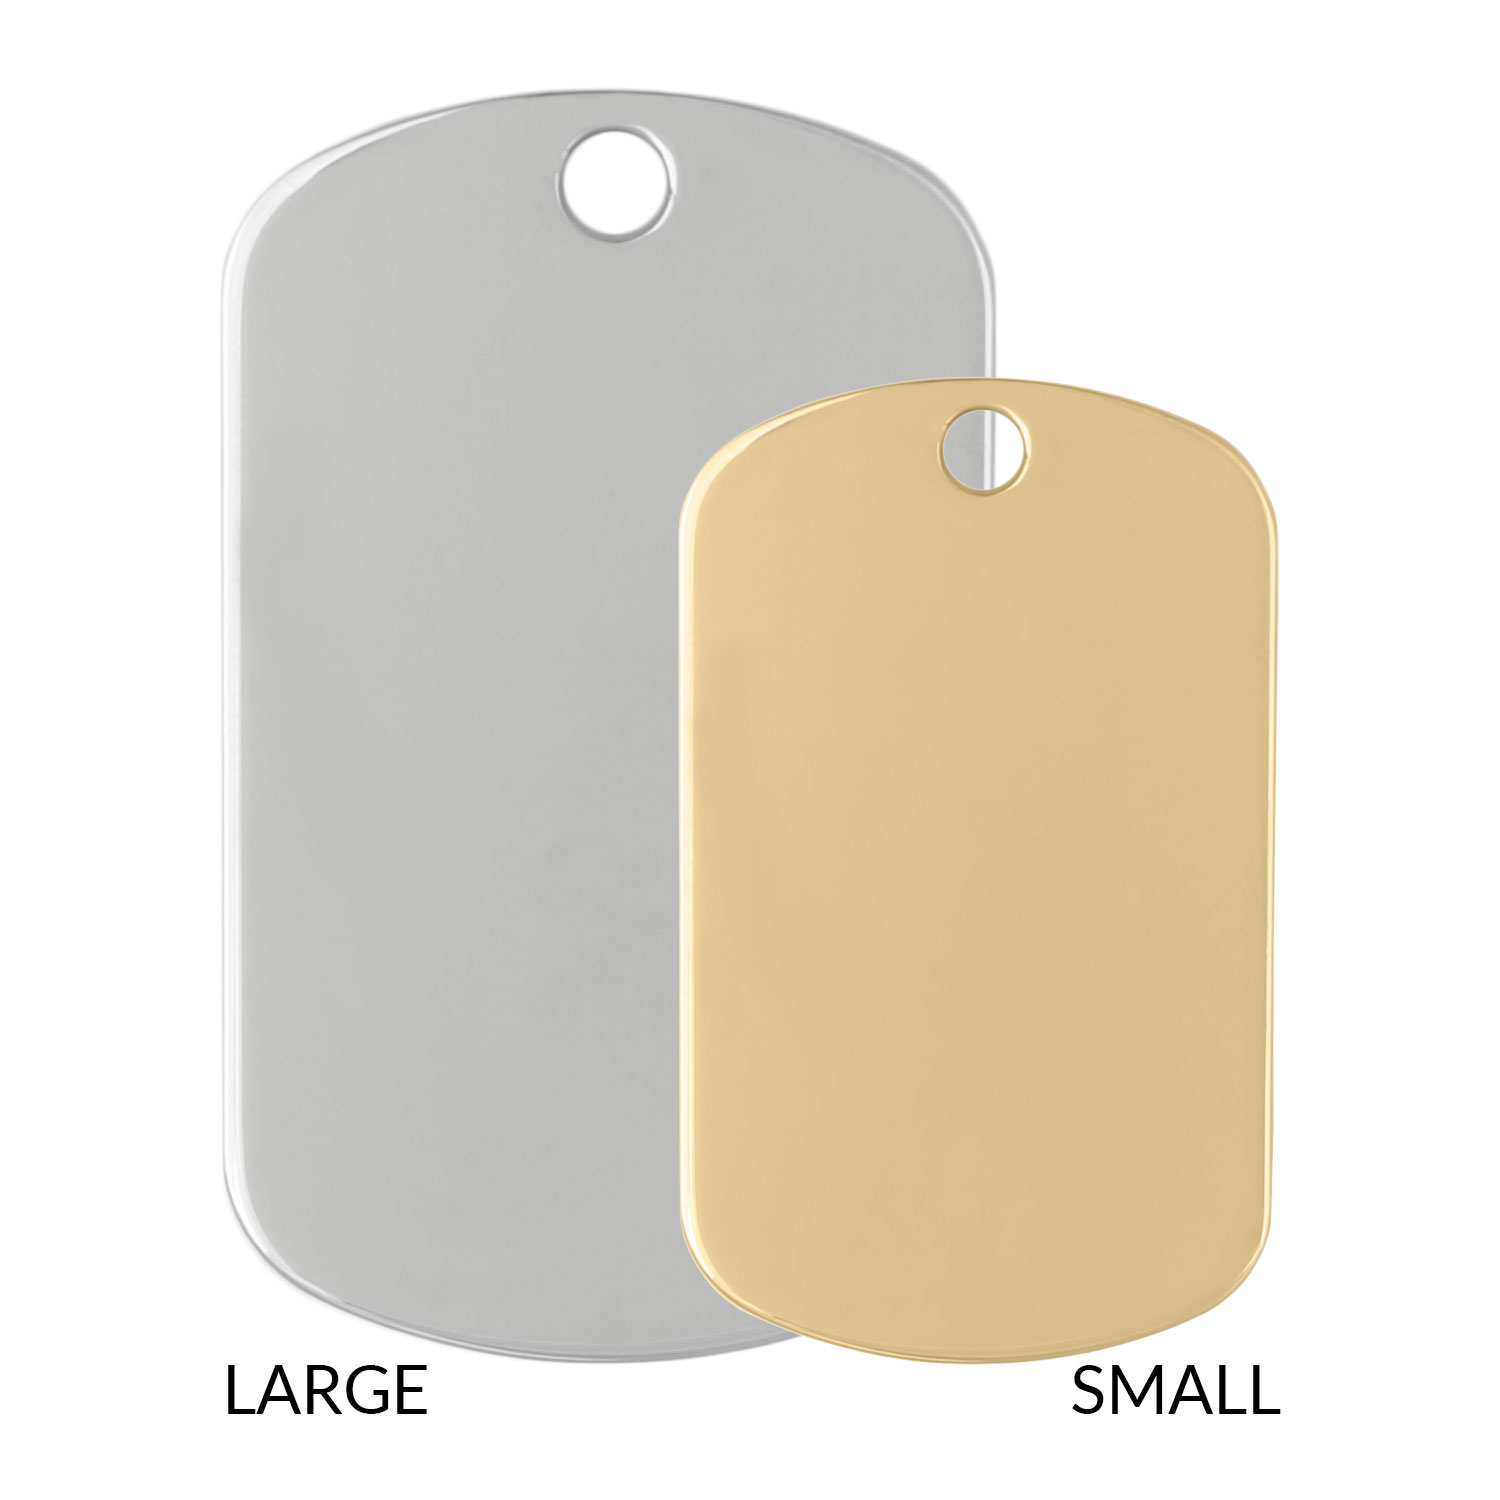 Military Dog ID Tag Sizes Comparison